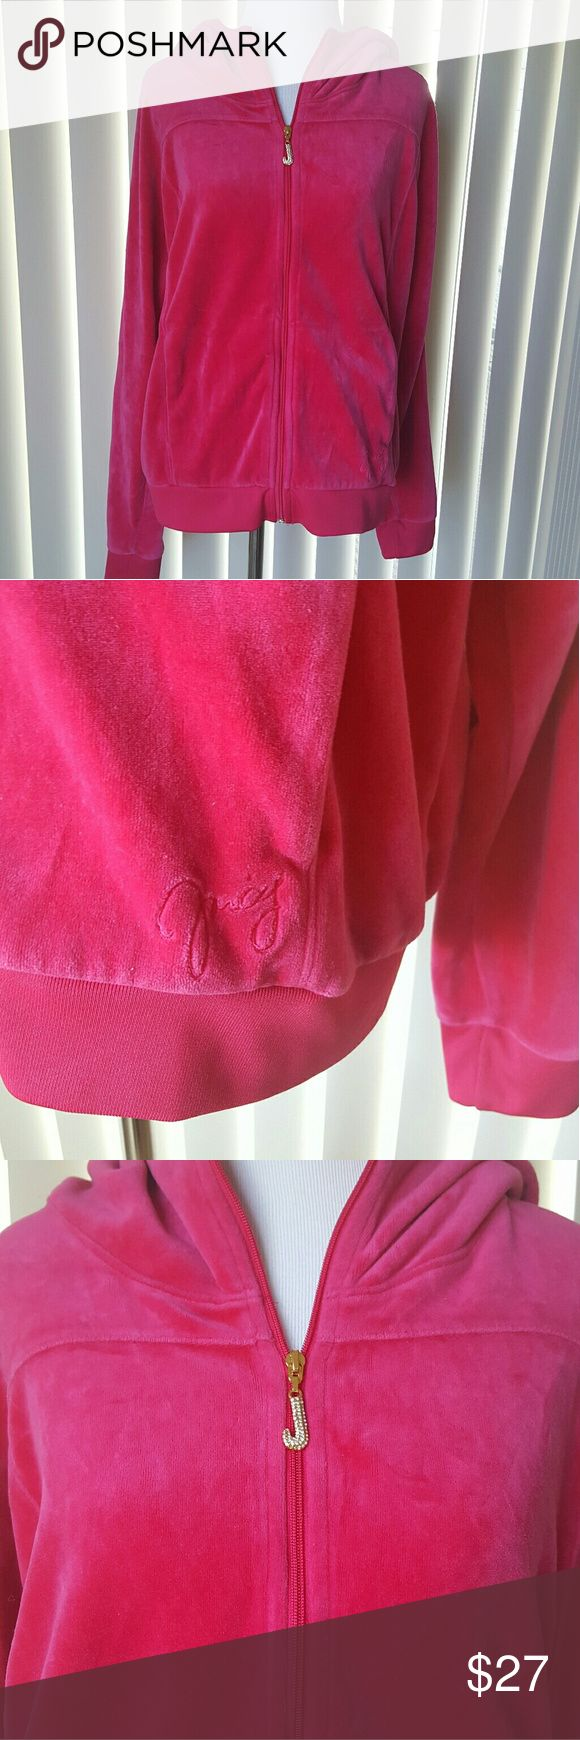 """Juicy Couture Bright Pink Velour Jacket Bright pink EUC Velour Jacket with hood. Gold zipper. There is one small spot where the Velour is a little more 'crushed' than the rest (pictured)  BUST 45"""" LENGTH 23"""" Juicy Couture Jackets & Coats"""